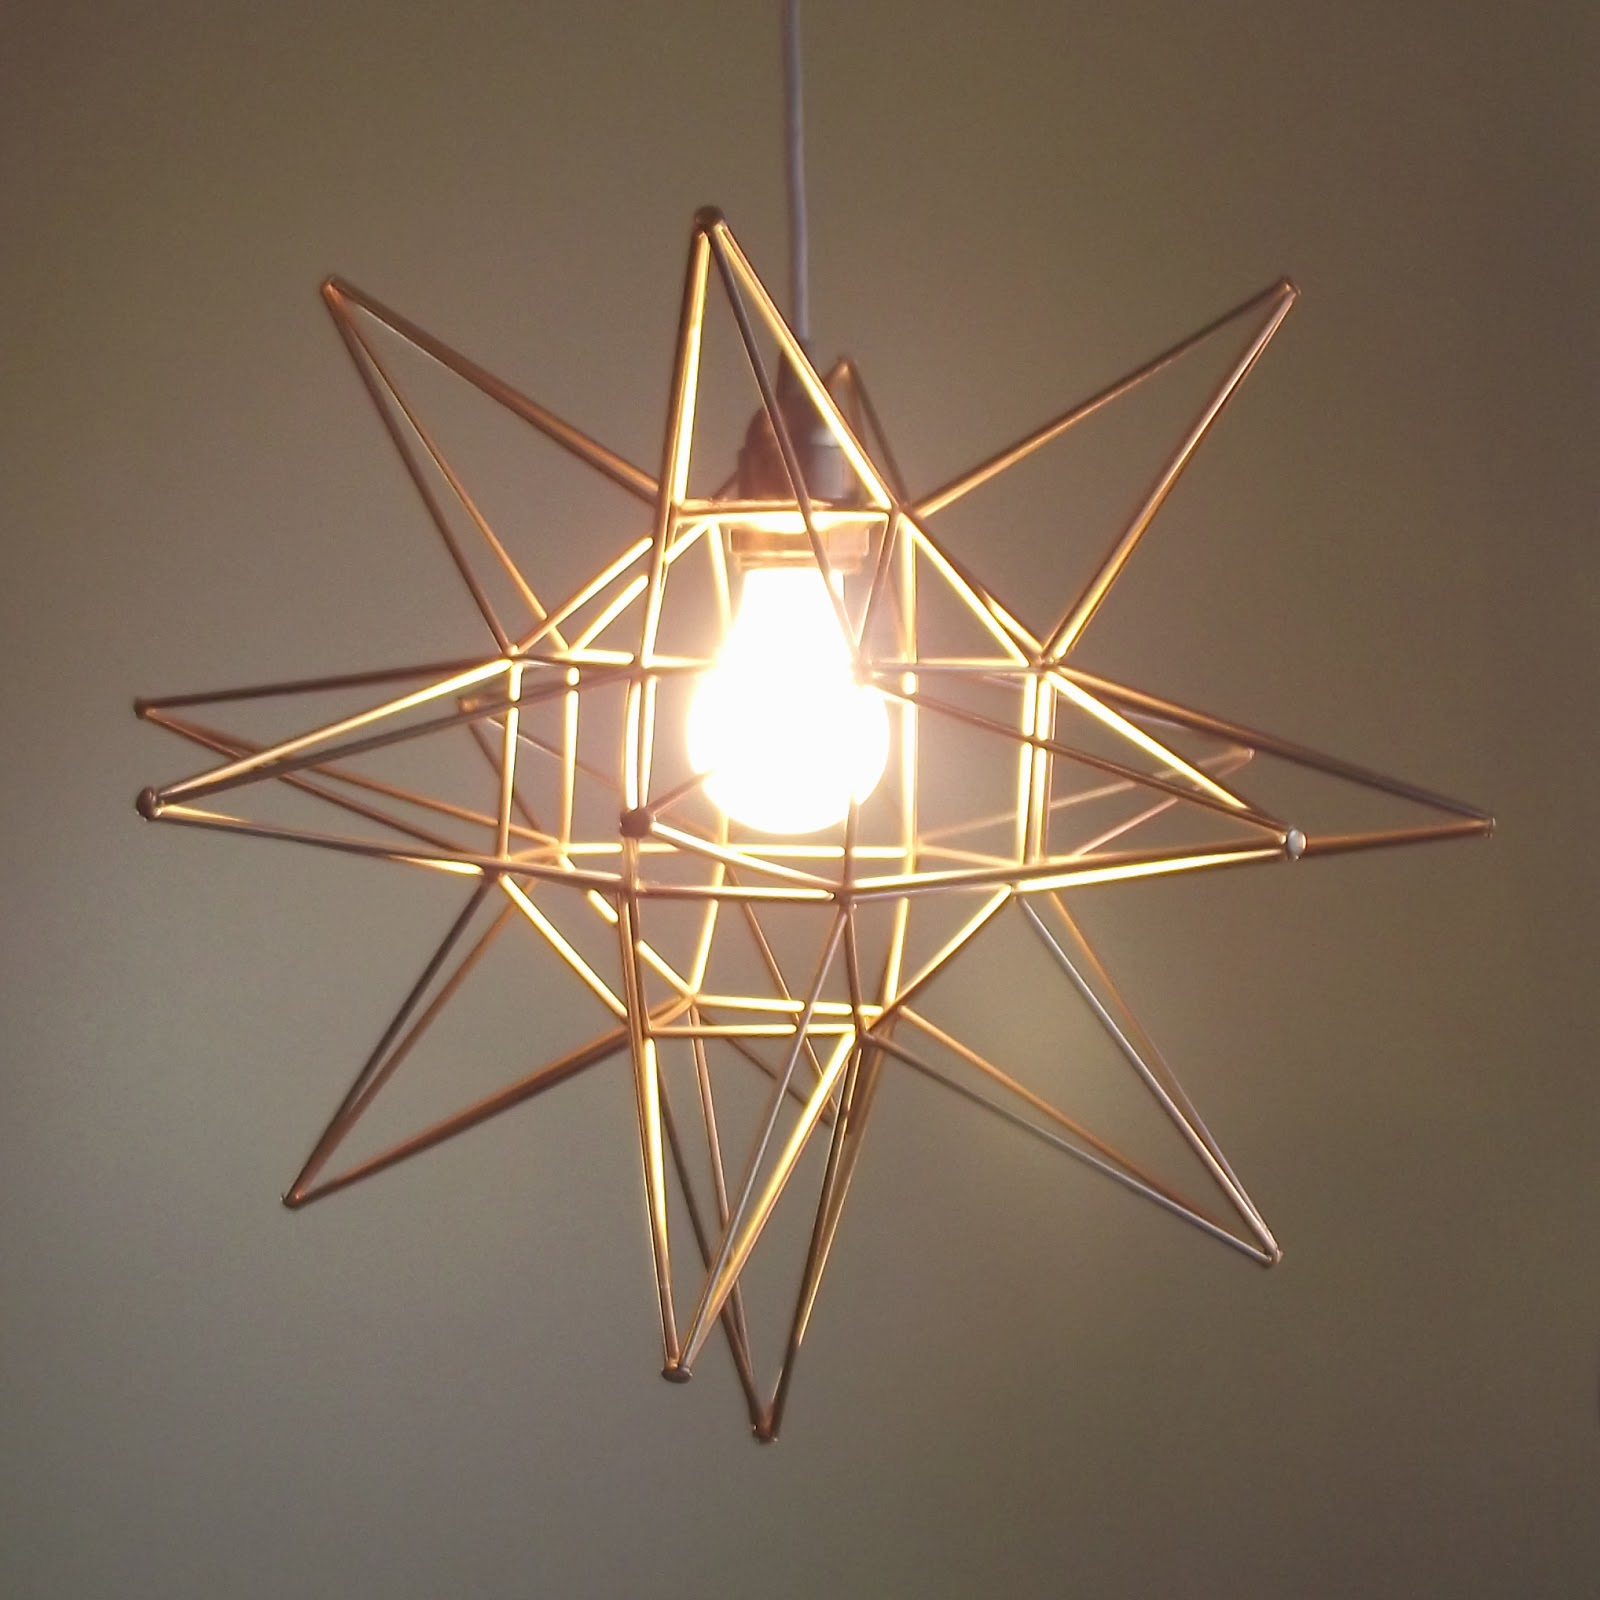 Moravian Star Pendant Light Fixture Made Of Metal Wire With Bulb For Home Decorating Ideas